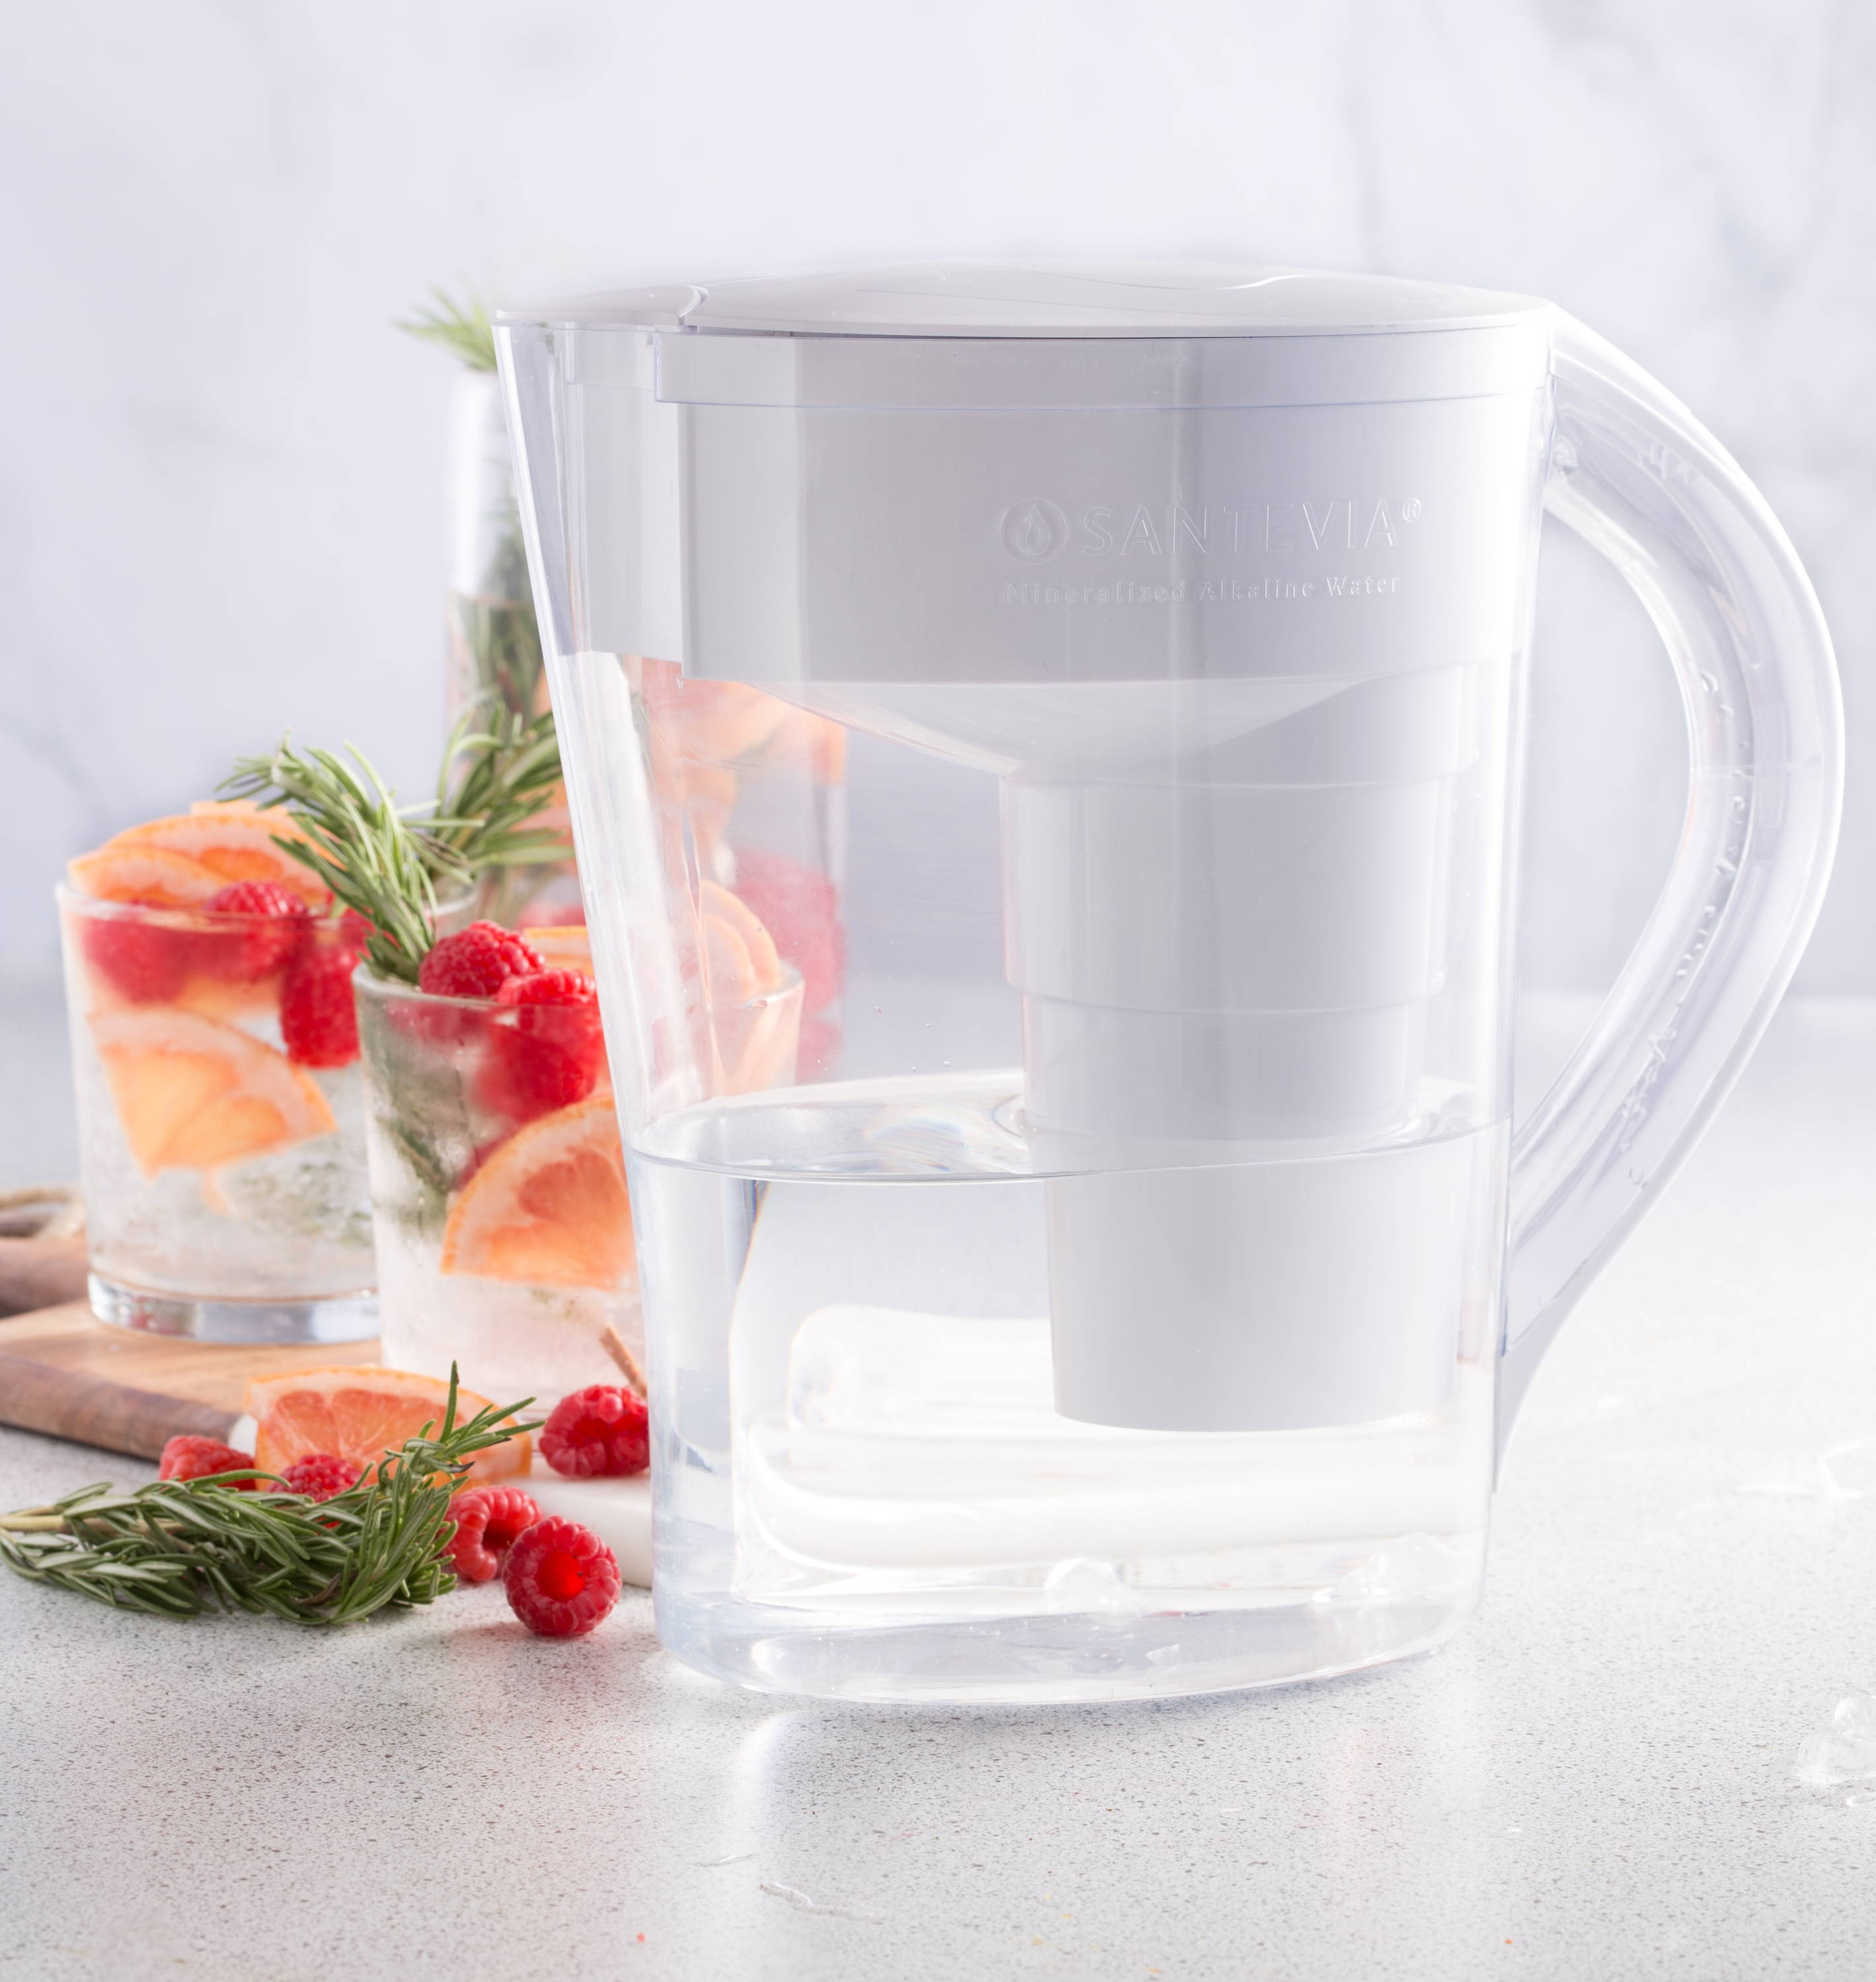 Santevia MINA Pitcher with glasses of alkaline water infused with grapefruit, raspberries, and rosemary.